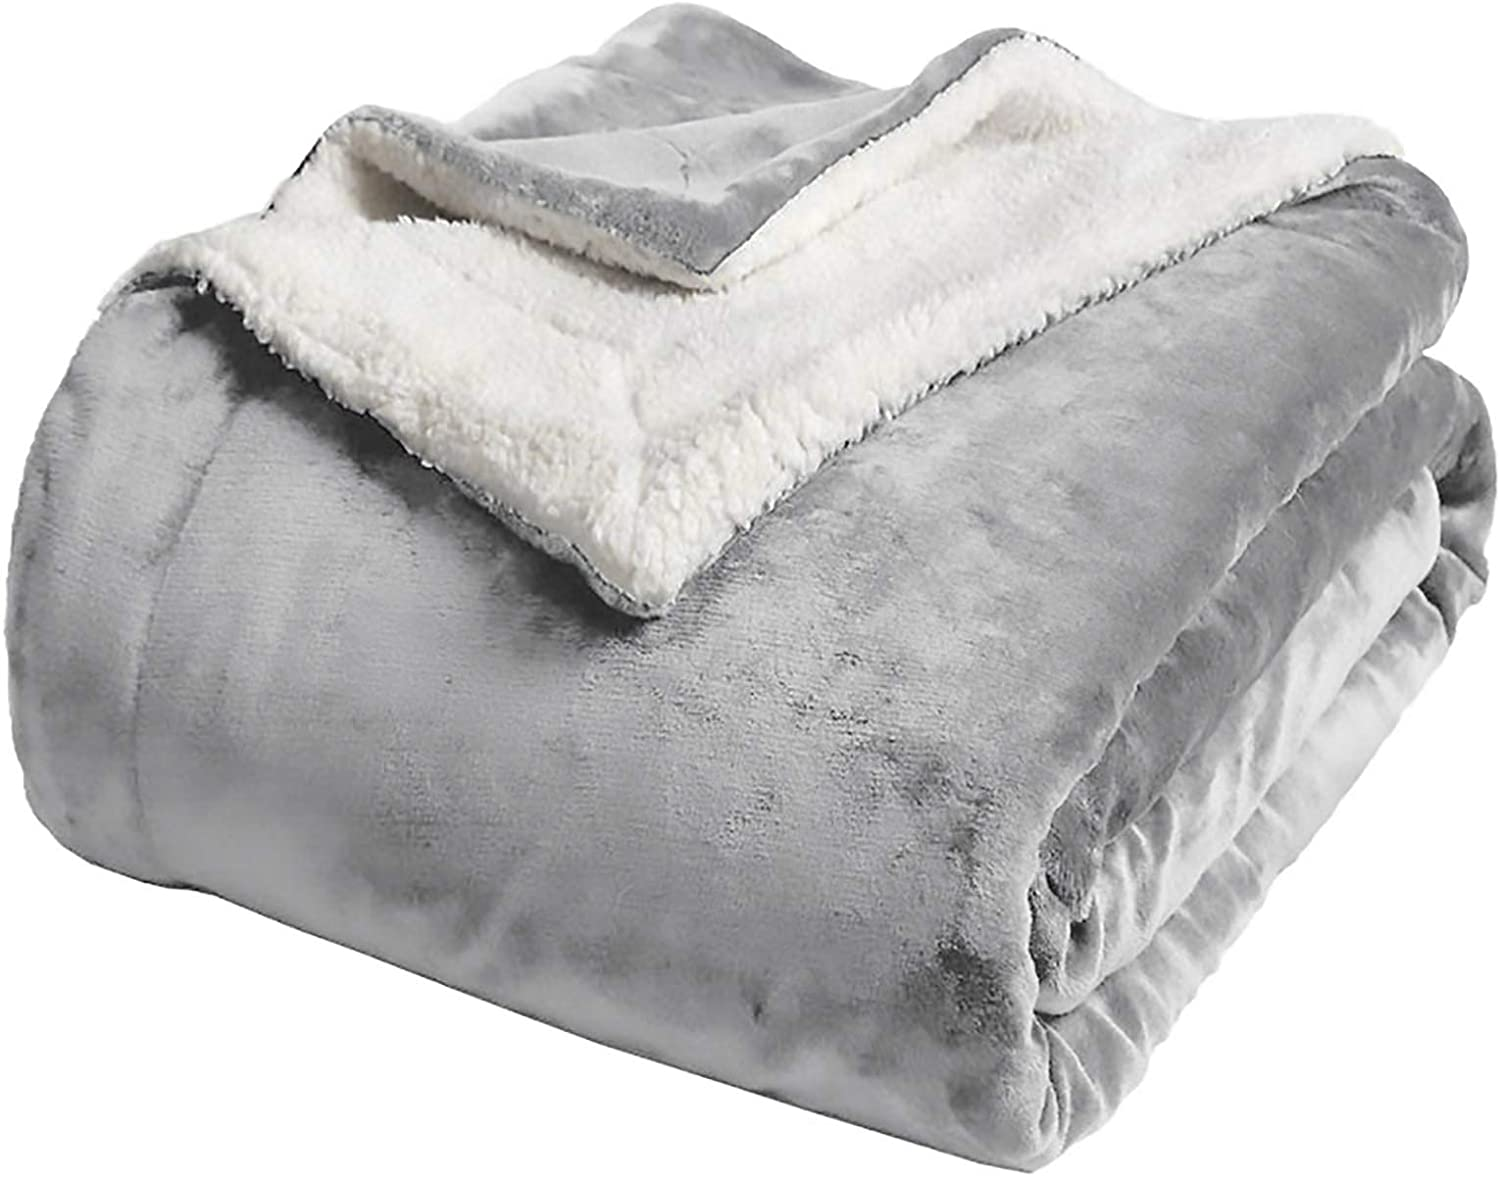 Chicwe Kleverise Sherpa Fleece Blanket Twin Size Plush Soft Reversible Super Soft Extra Warm and Comfortable Fuzzy Blanket Suitable for Sofa Travel and Outdoor Silver Grey 6080 in